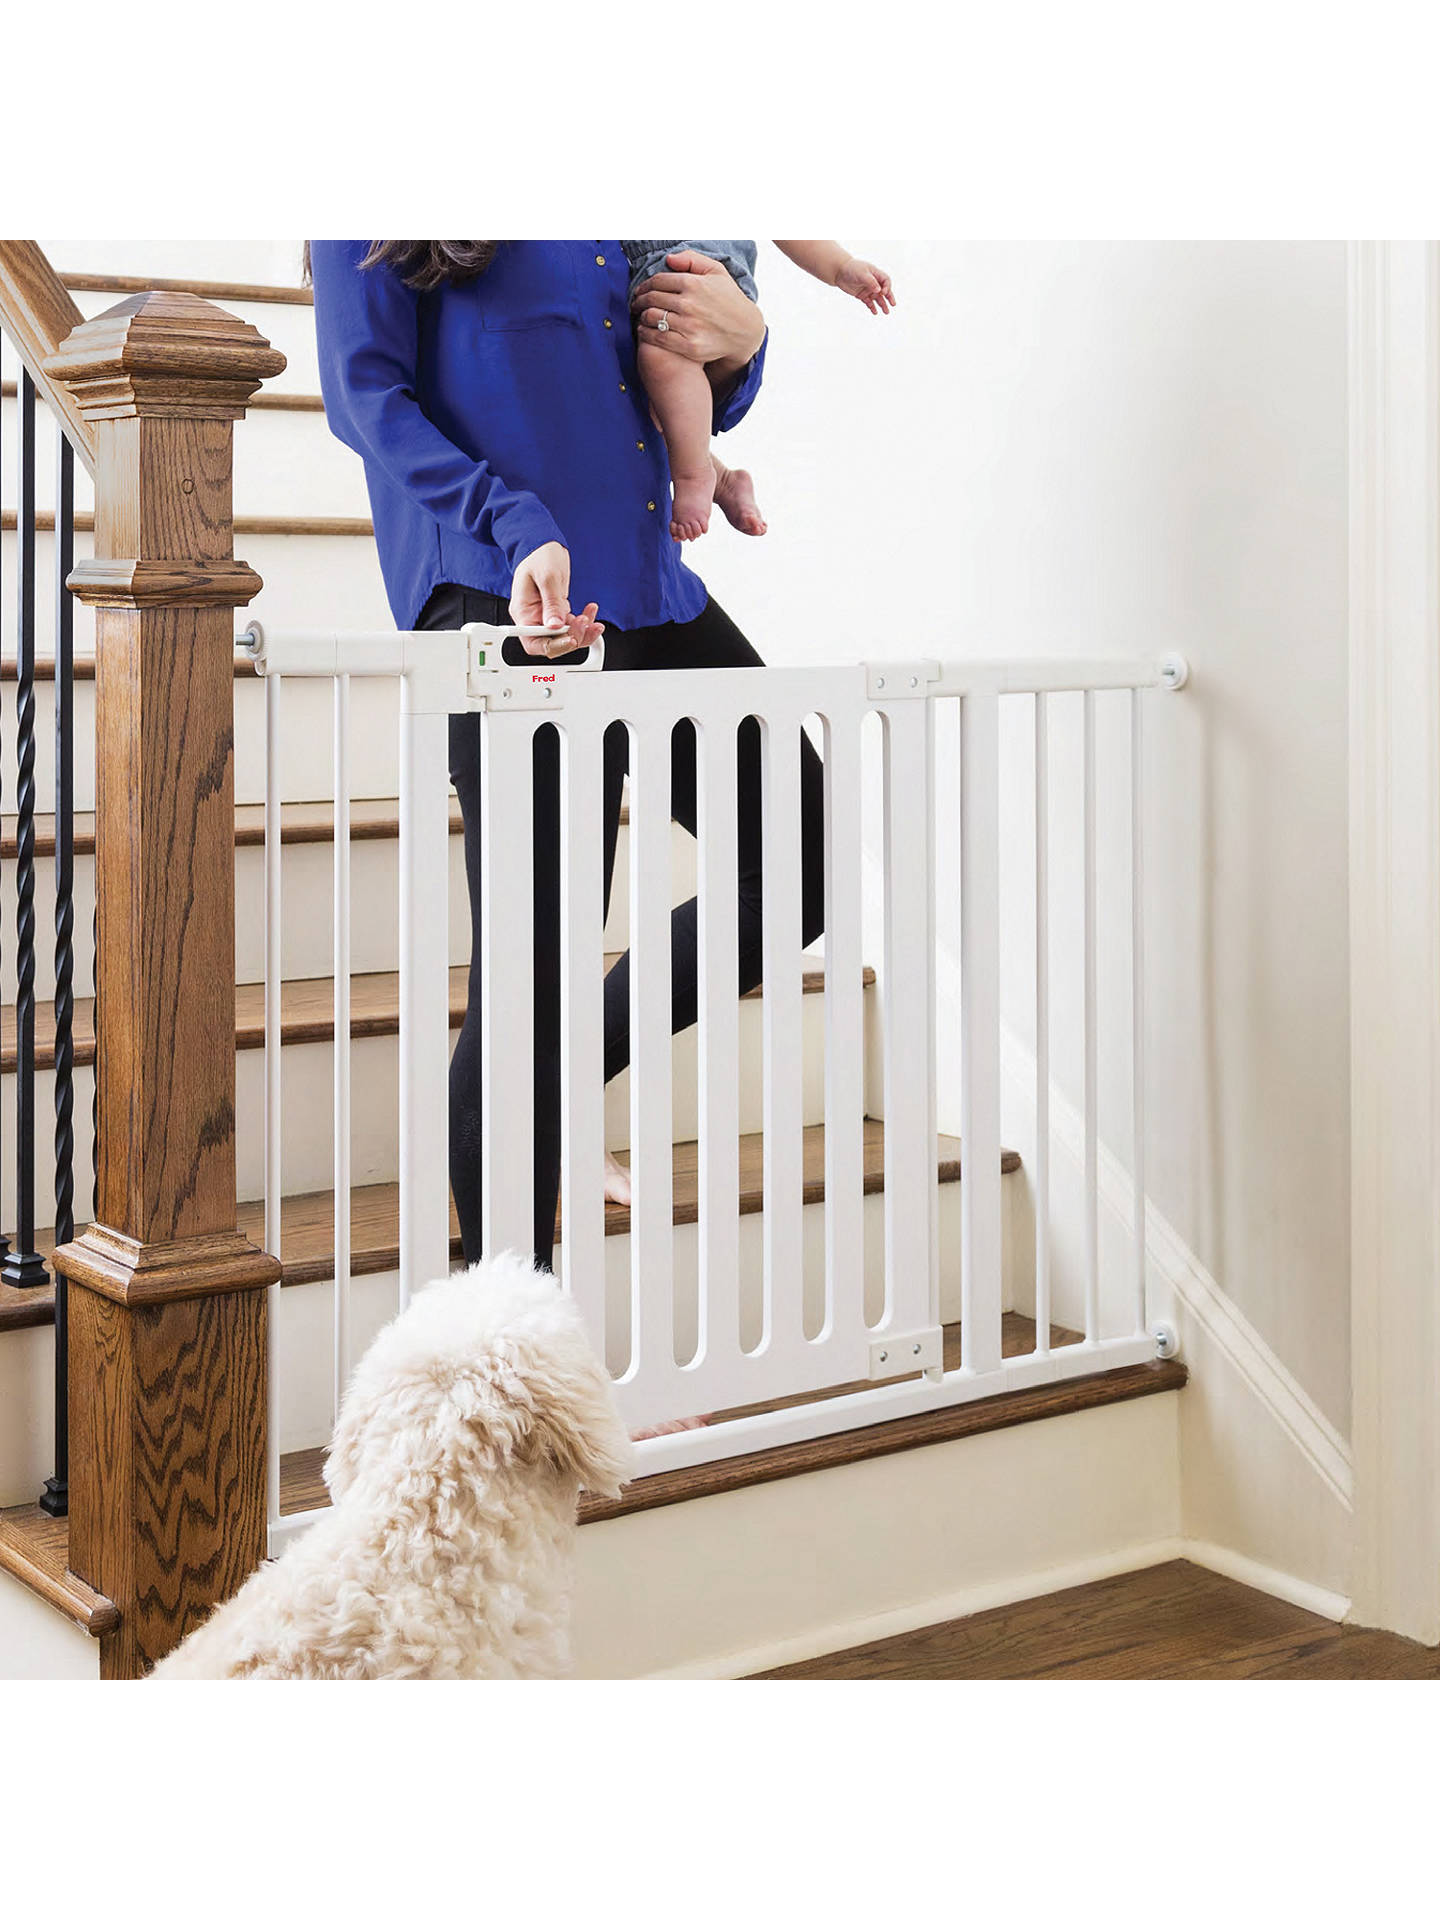 Fred Pressure Fit White Wood Safety Gate